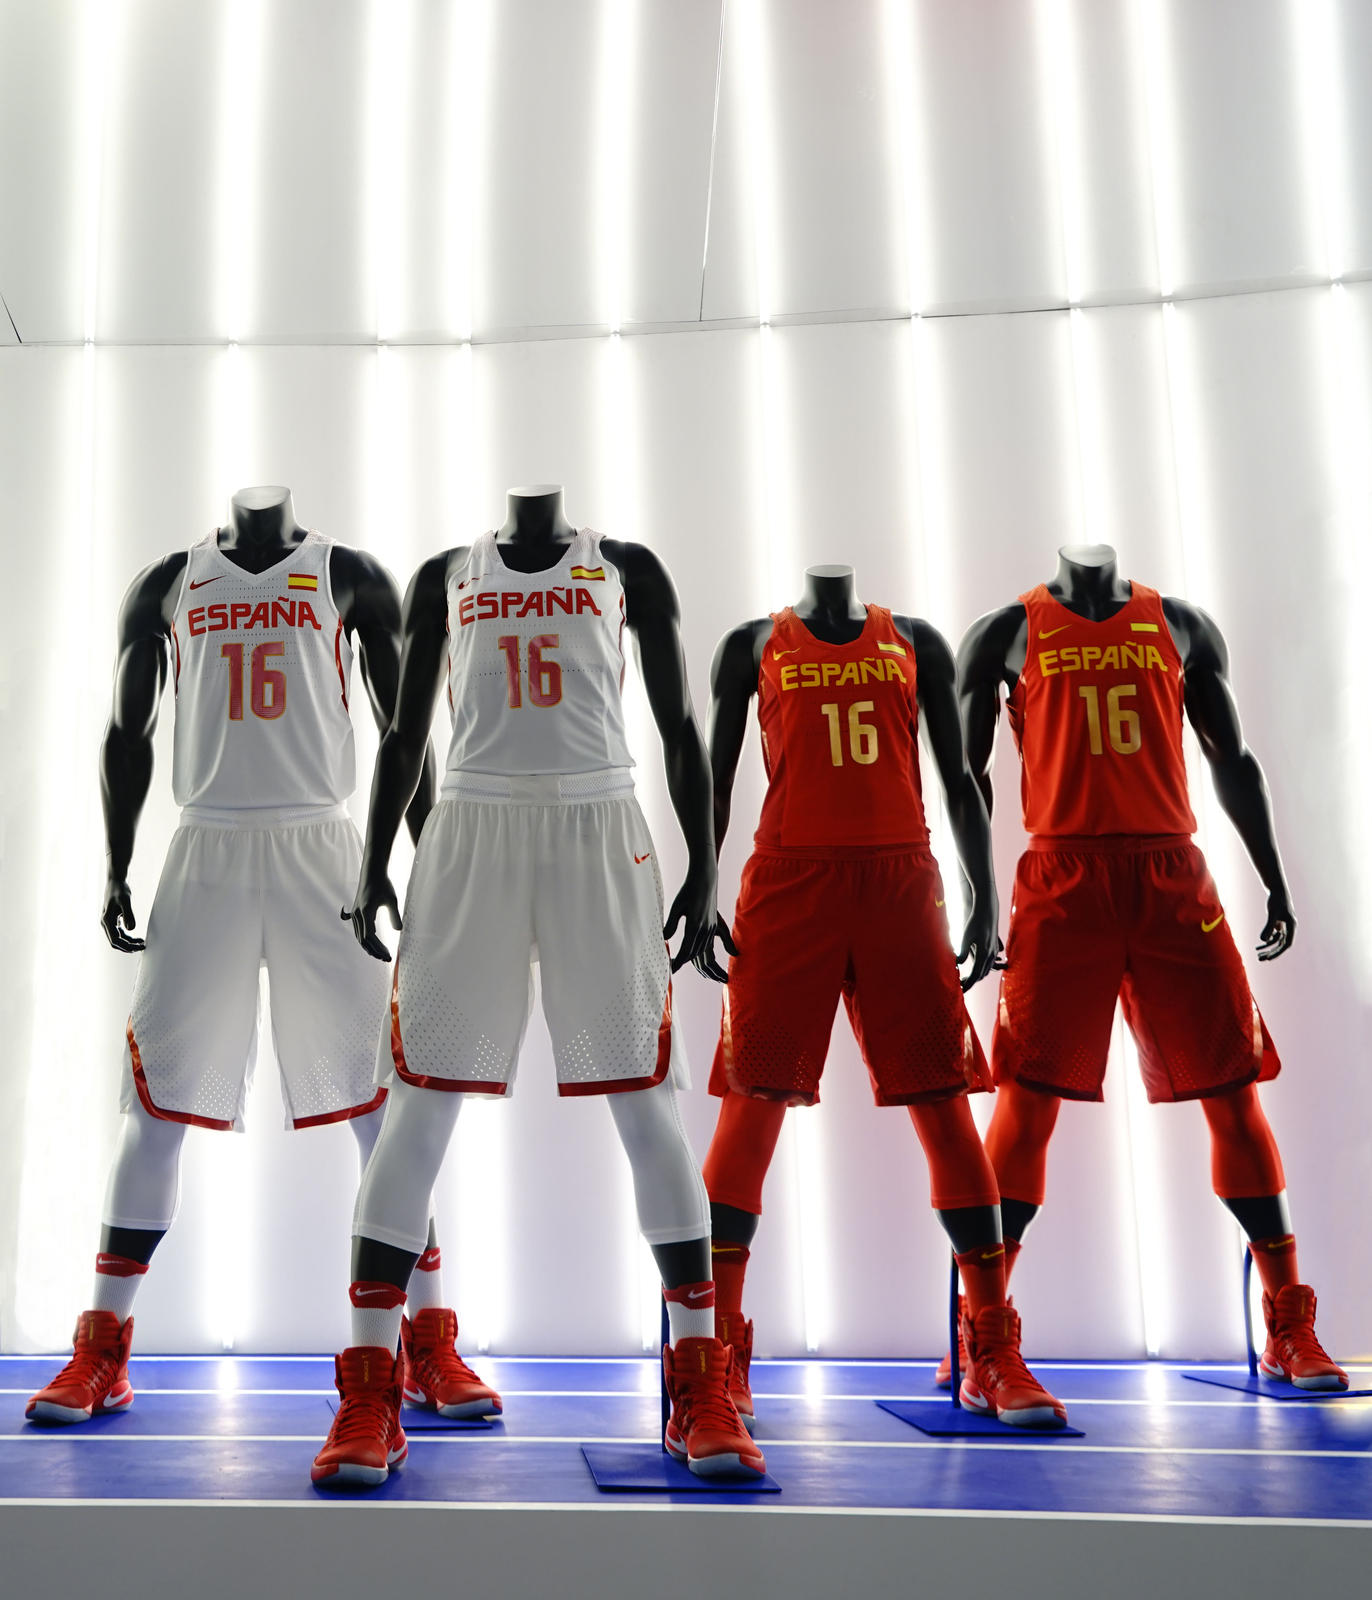 Spain 2016 Nike Vapor Basketball Uniforms - Nike News